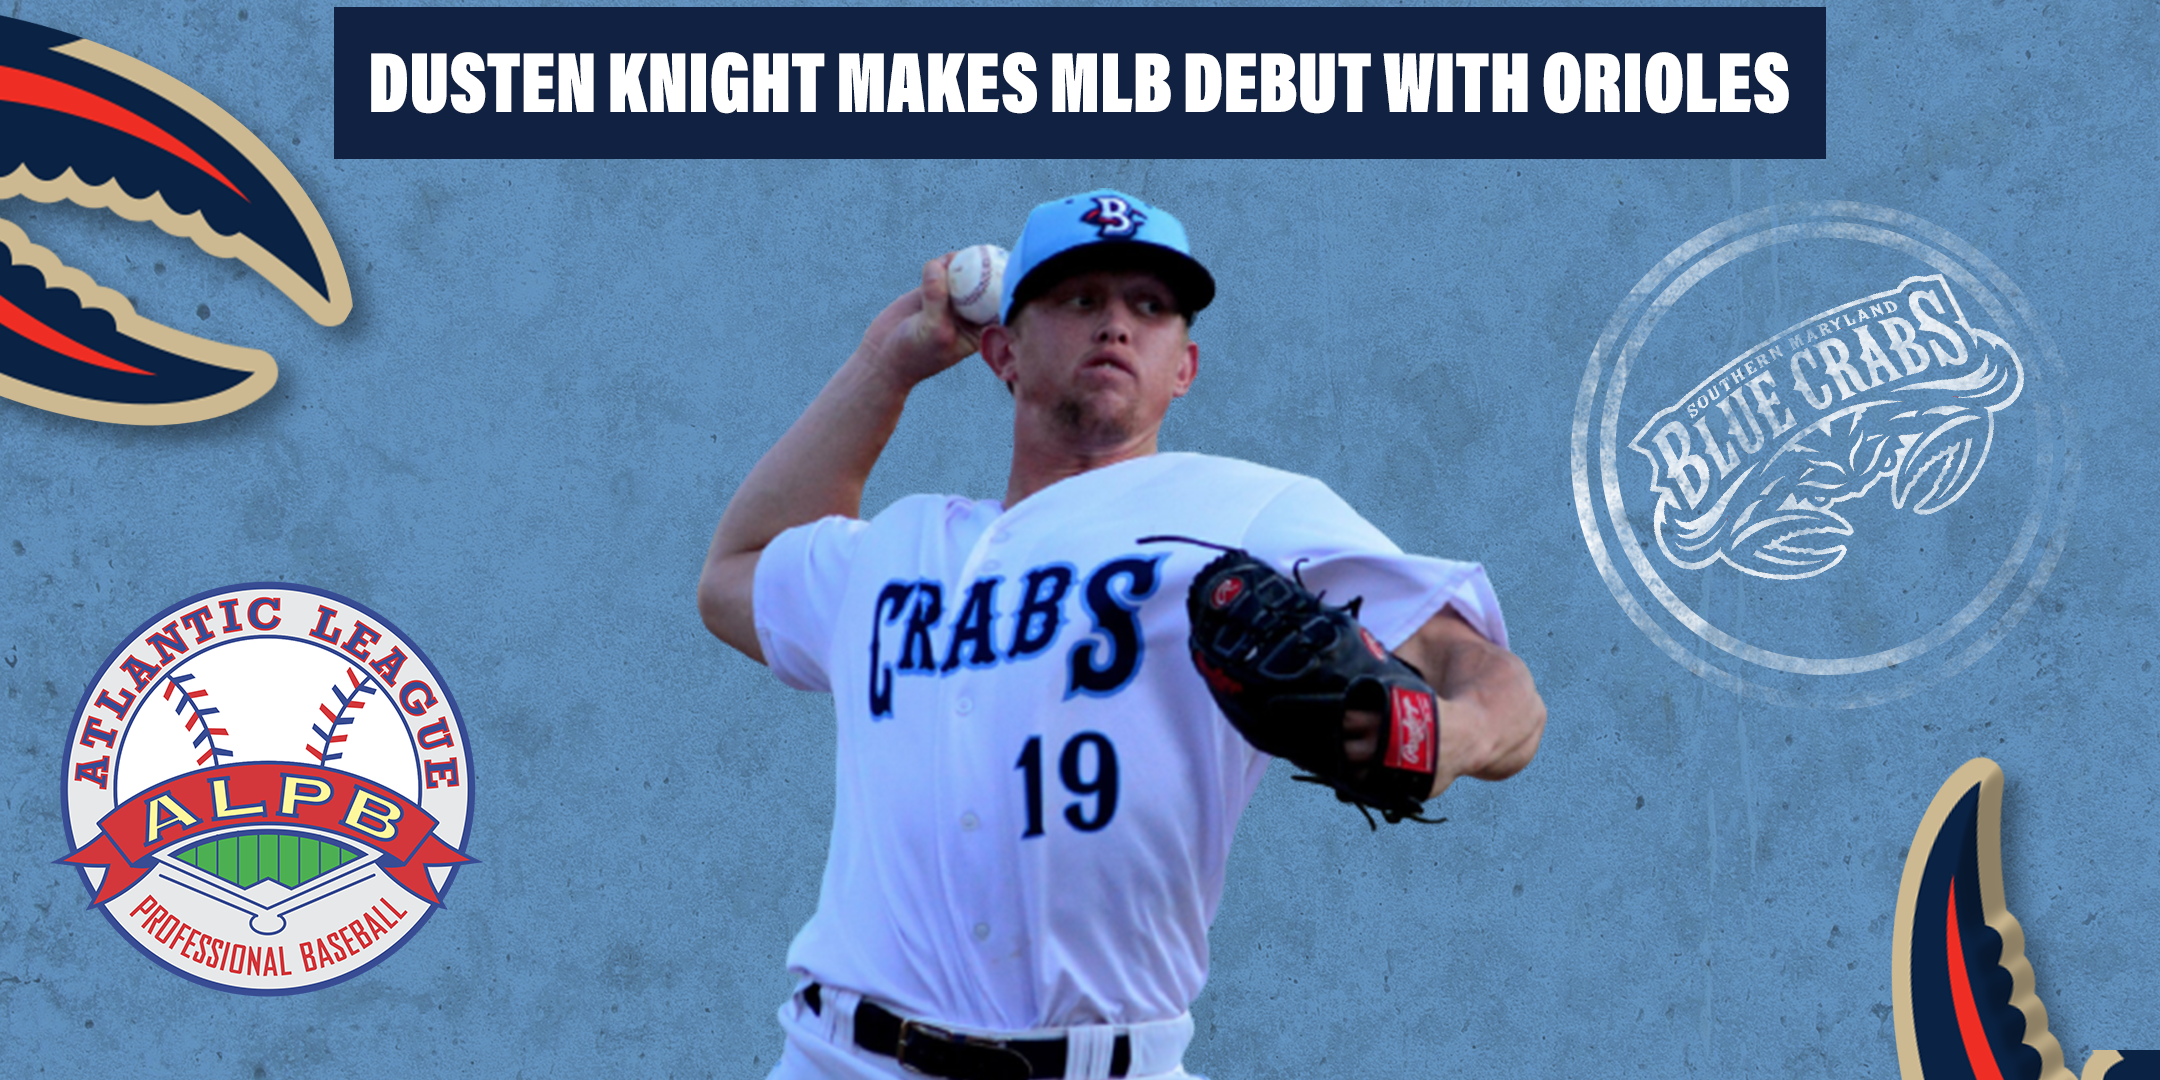 2019 Blue Crab Dusten Knight Makes MLB Debut With Orioles